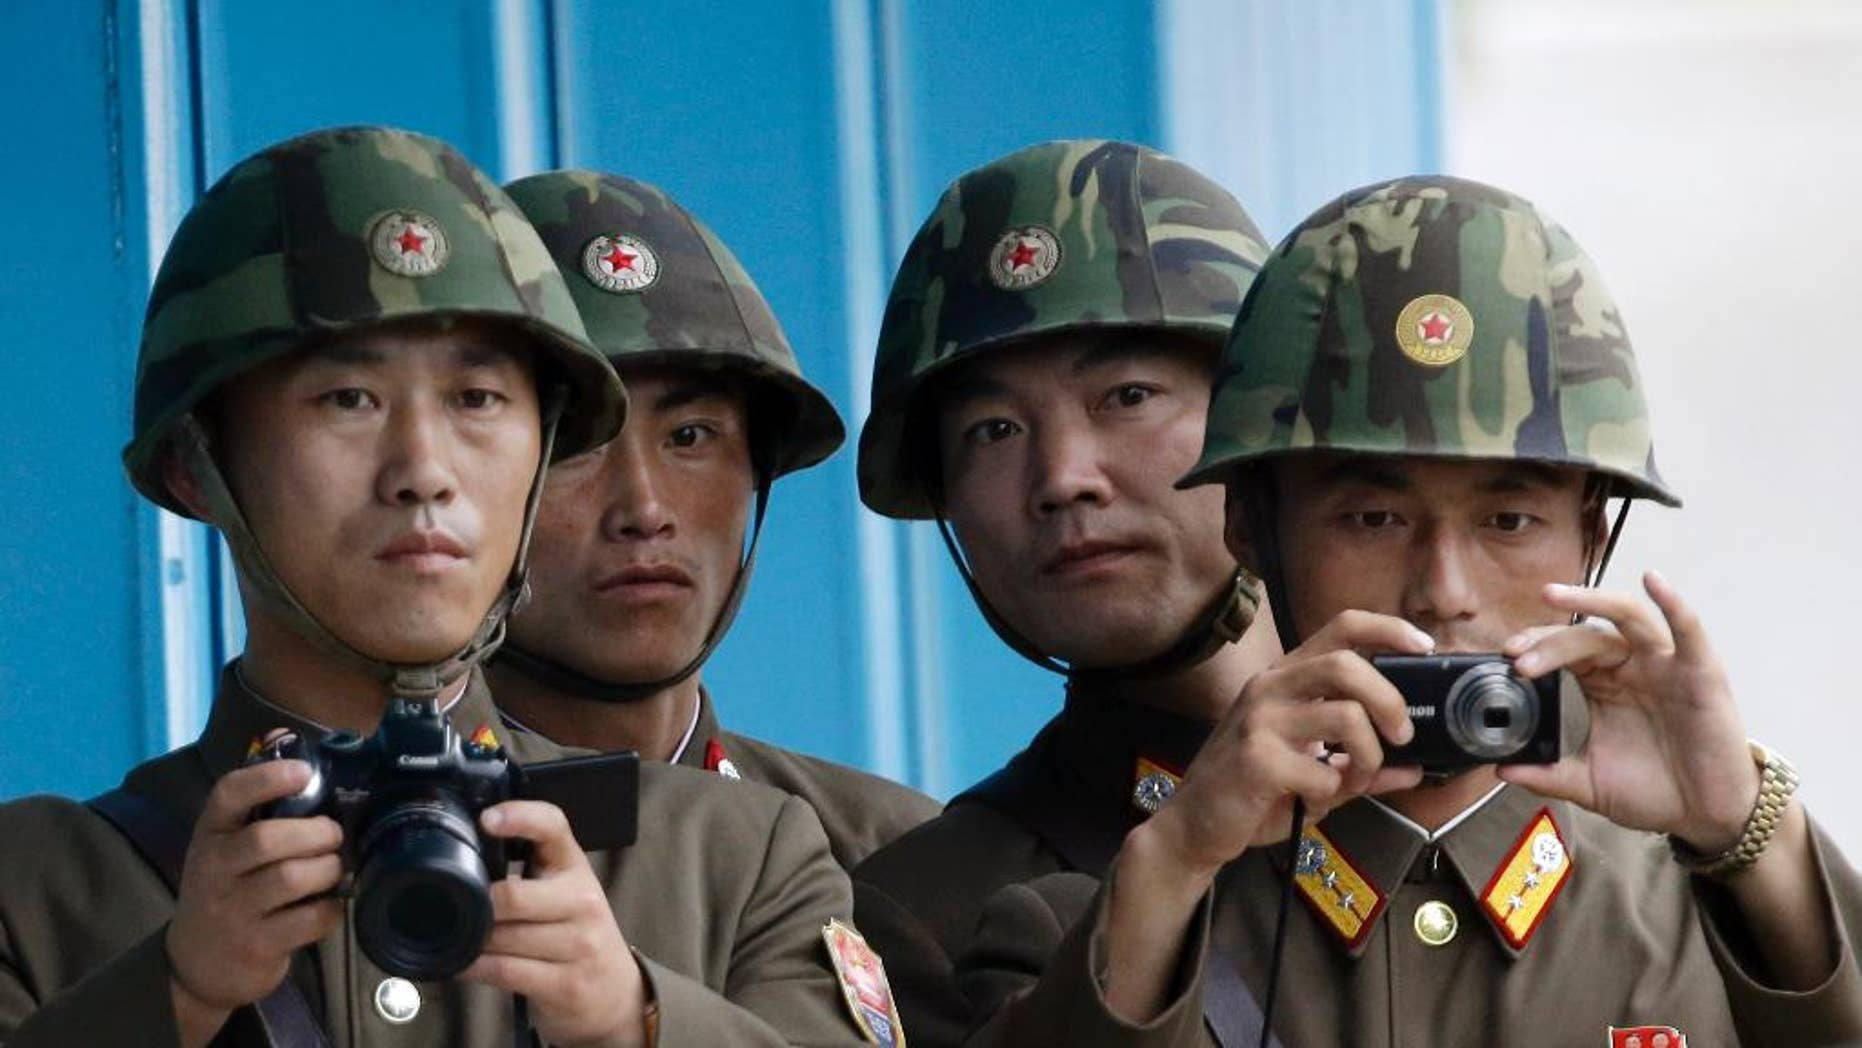 In this Saturday, July 27, 2013 photo, North Korean soldiers watch the south side with cameras at the border village of Panmunjom, which has separated the two Koreas since the Korean War, in Paju, north of Seoul, South Korea. Seoul defense officials said South Korean troops have fired warning shots after North Korean soldiers approached too close to the border separating the rival countries. (AP Photo/Lee Jin-man)